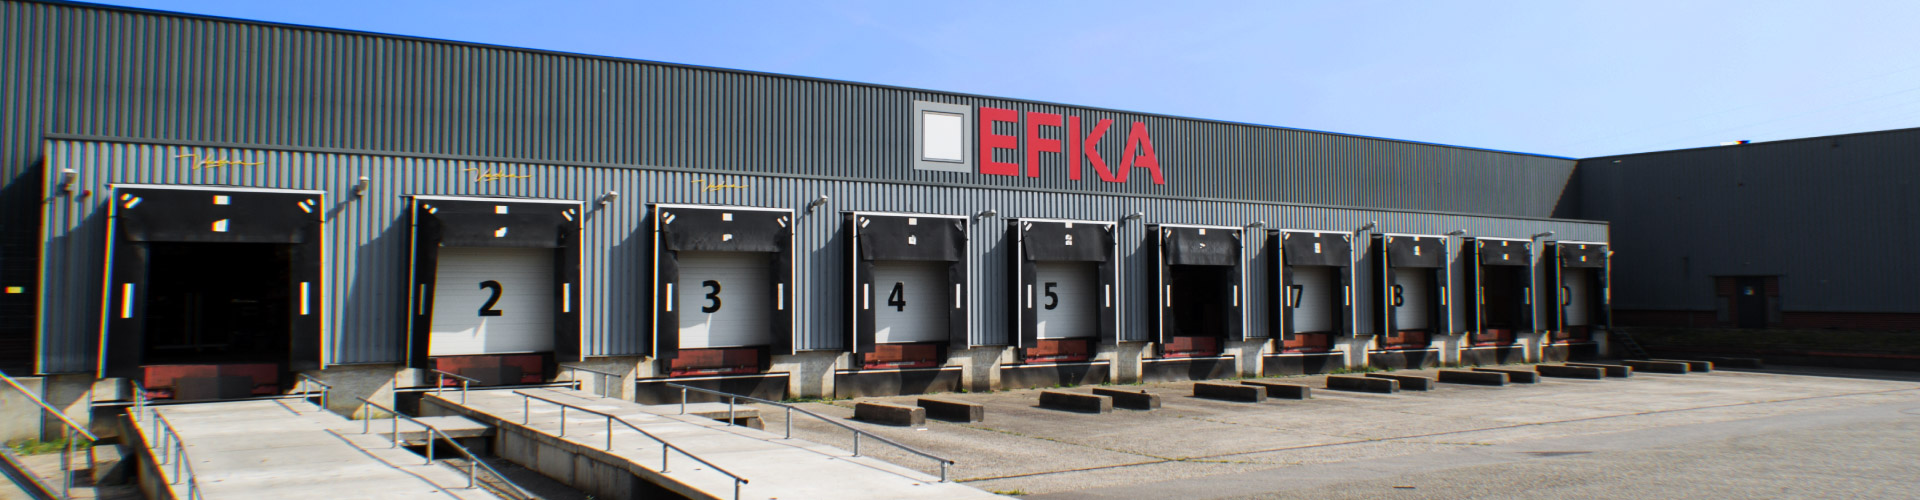 EFKA open durng summer